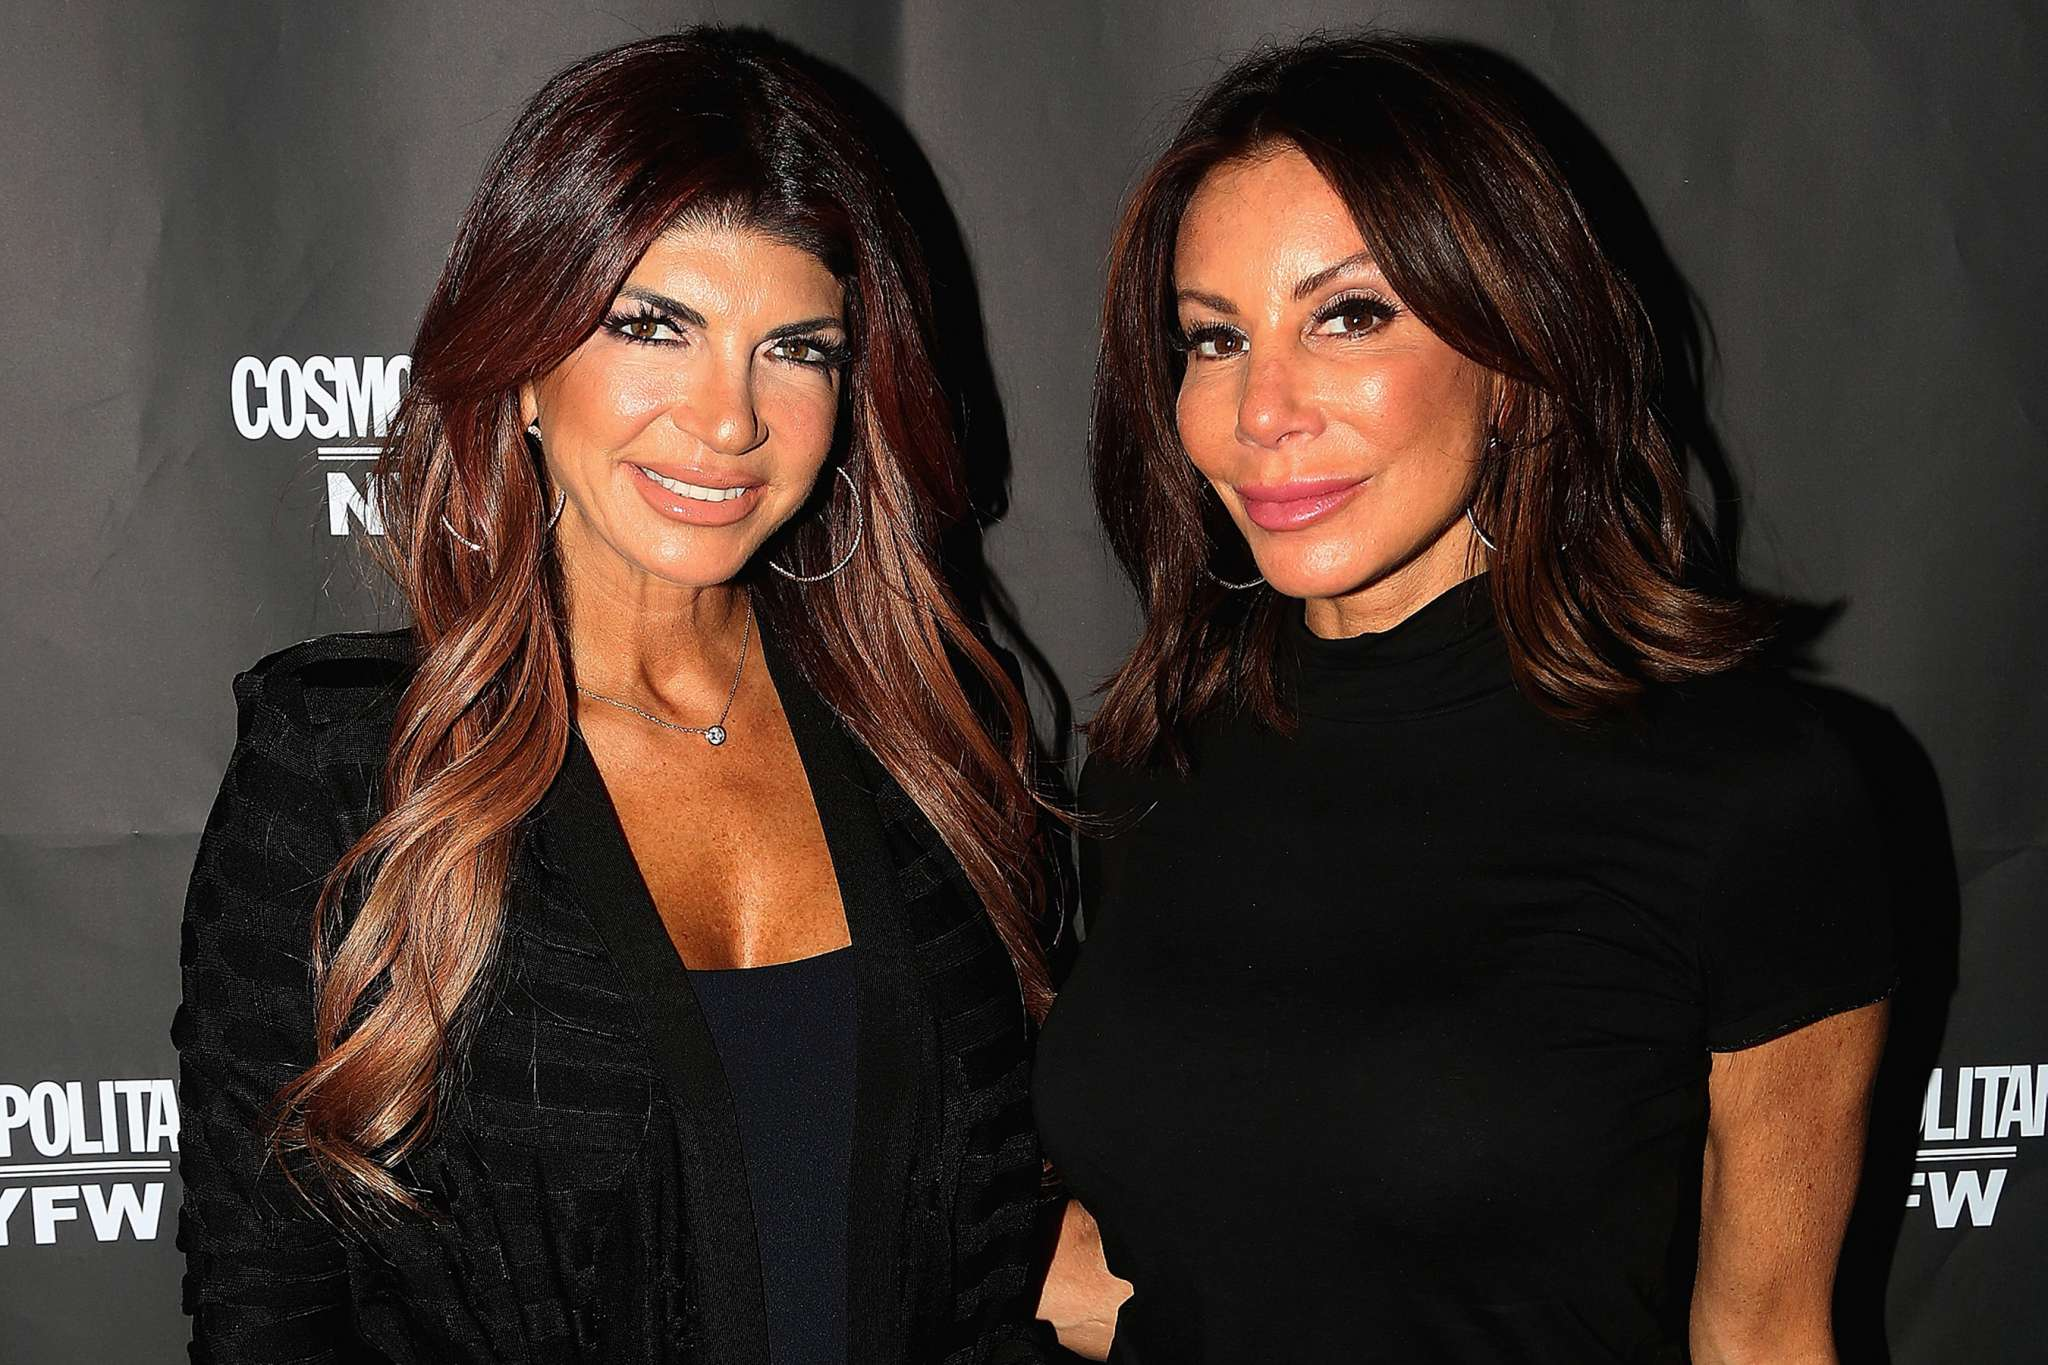 teresa-giudice-and-danielle-staubs-friendship-causing-a-lot-of-drama-on-rhonj